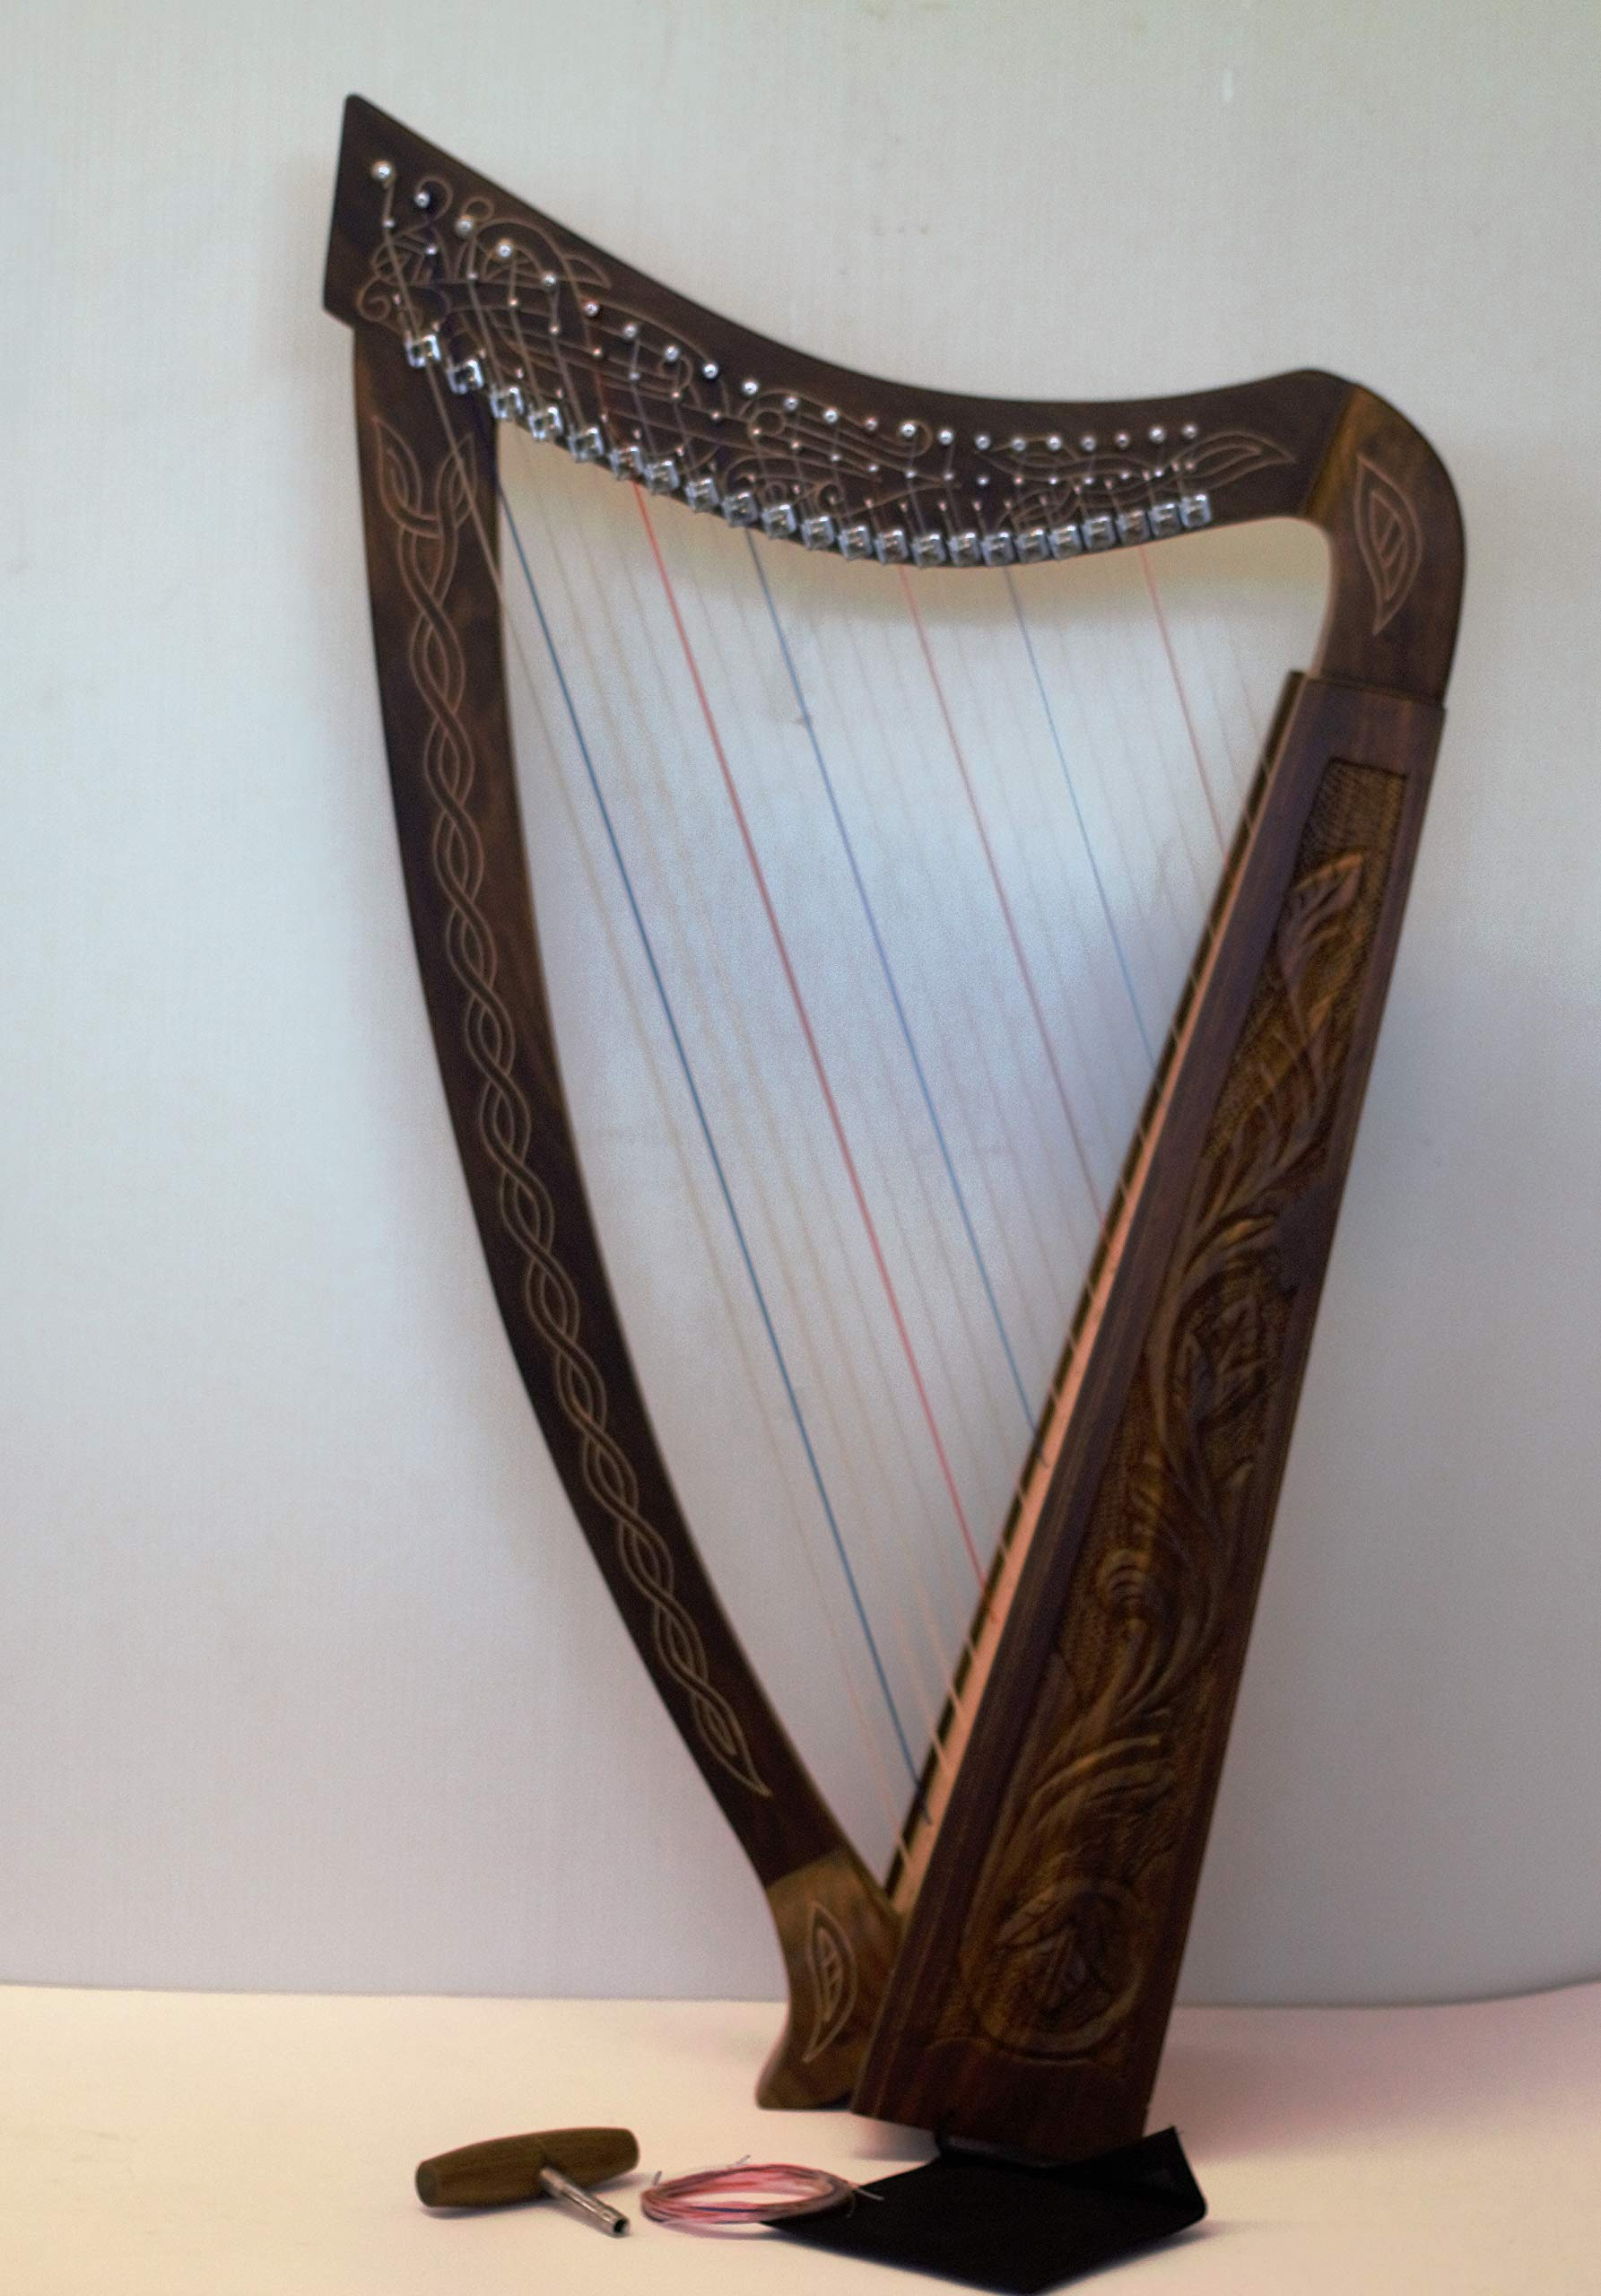 Tall Celtic Irish Rose Harp 22 Strings Solid Wood with Metal Levers - Bag -Extra Strings